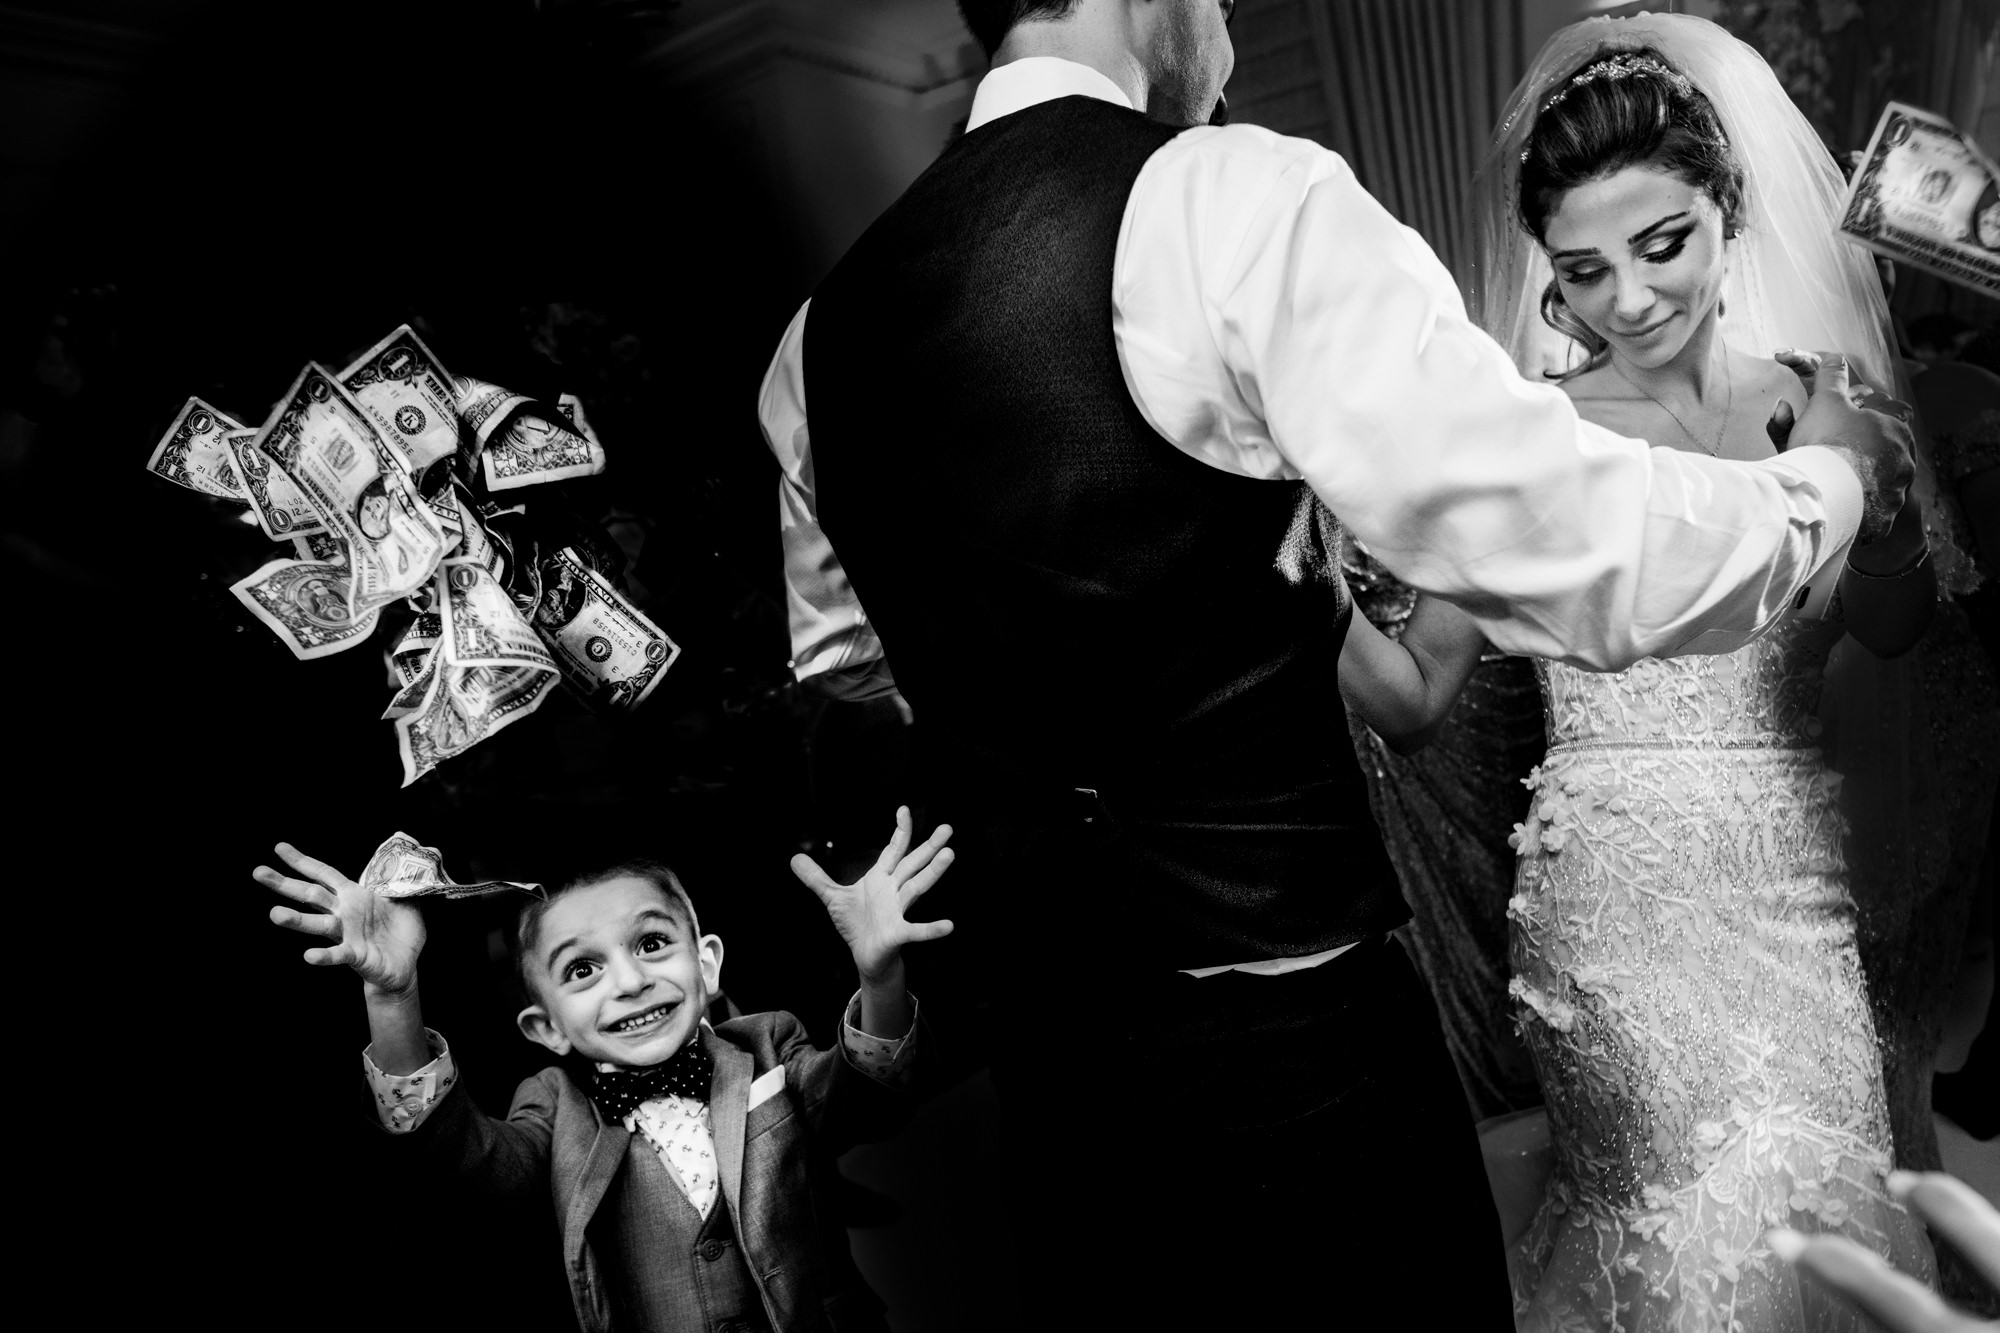 Kid throws money up during money dance at wedding by Matei Horvath of Los Angeles